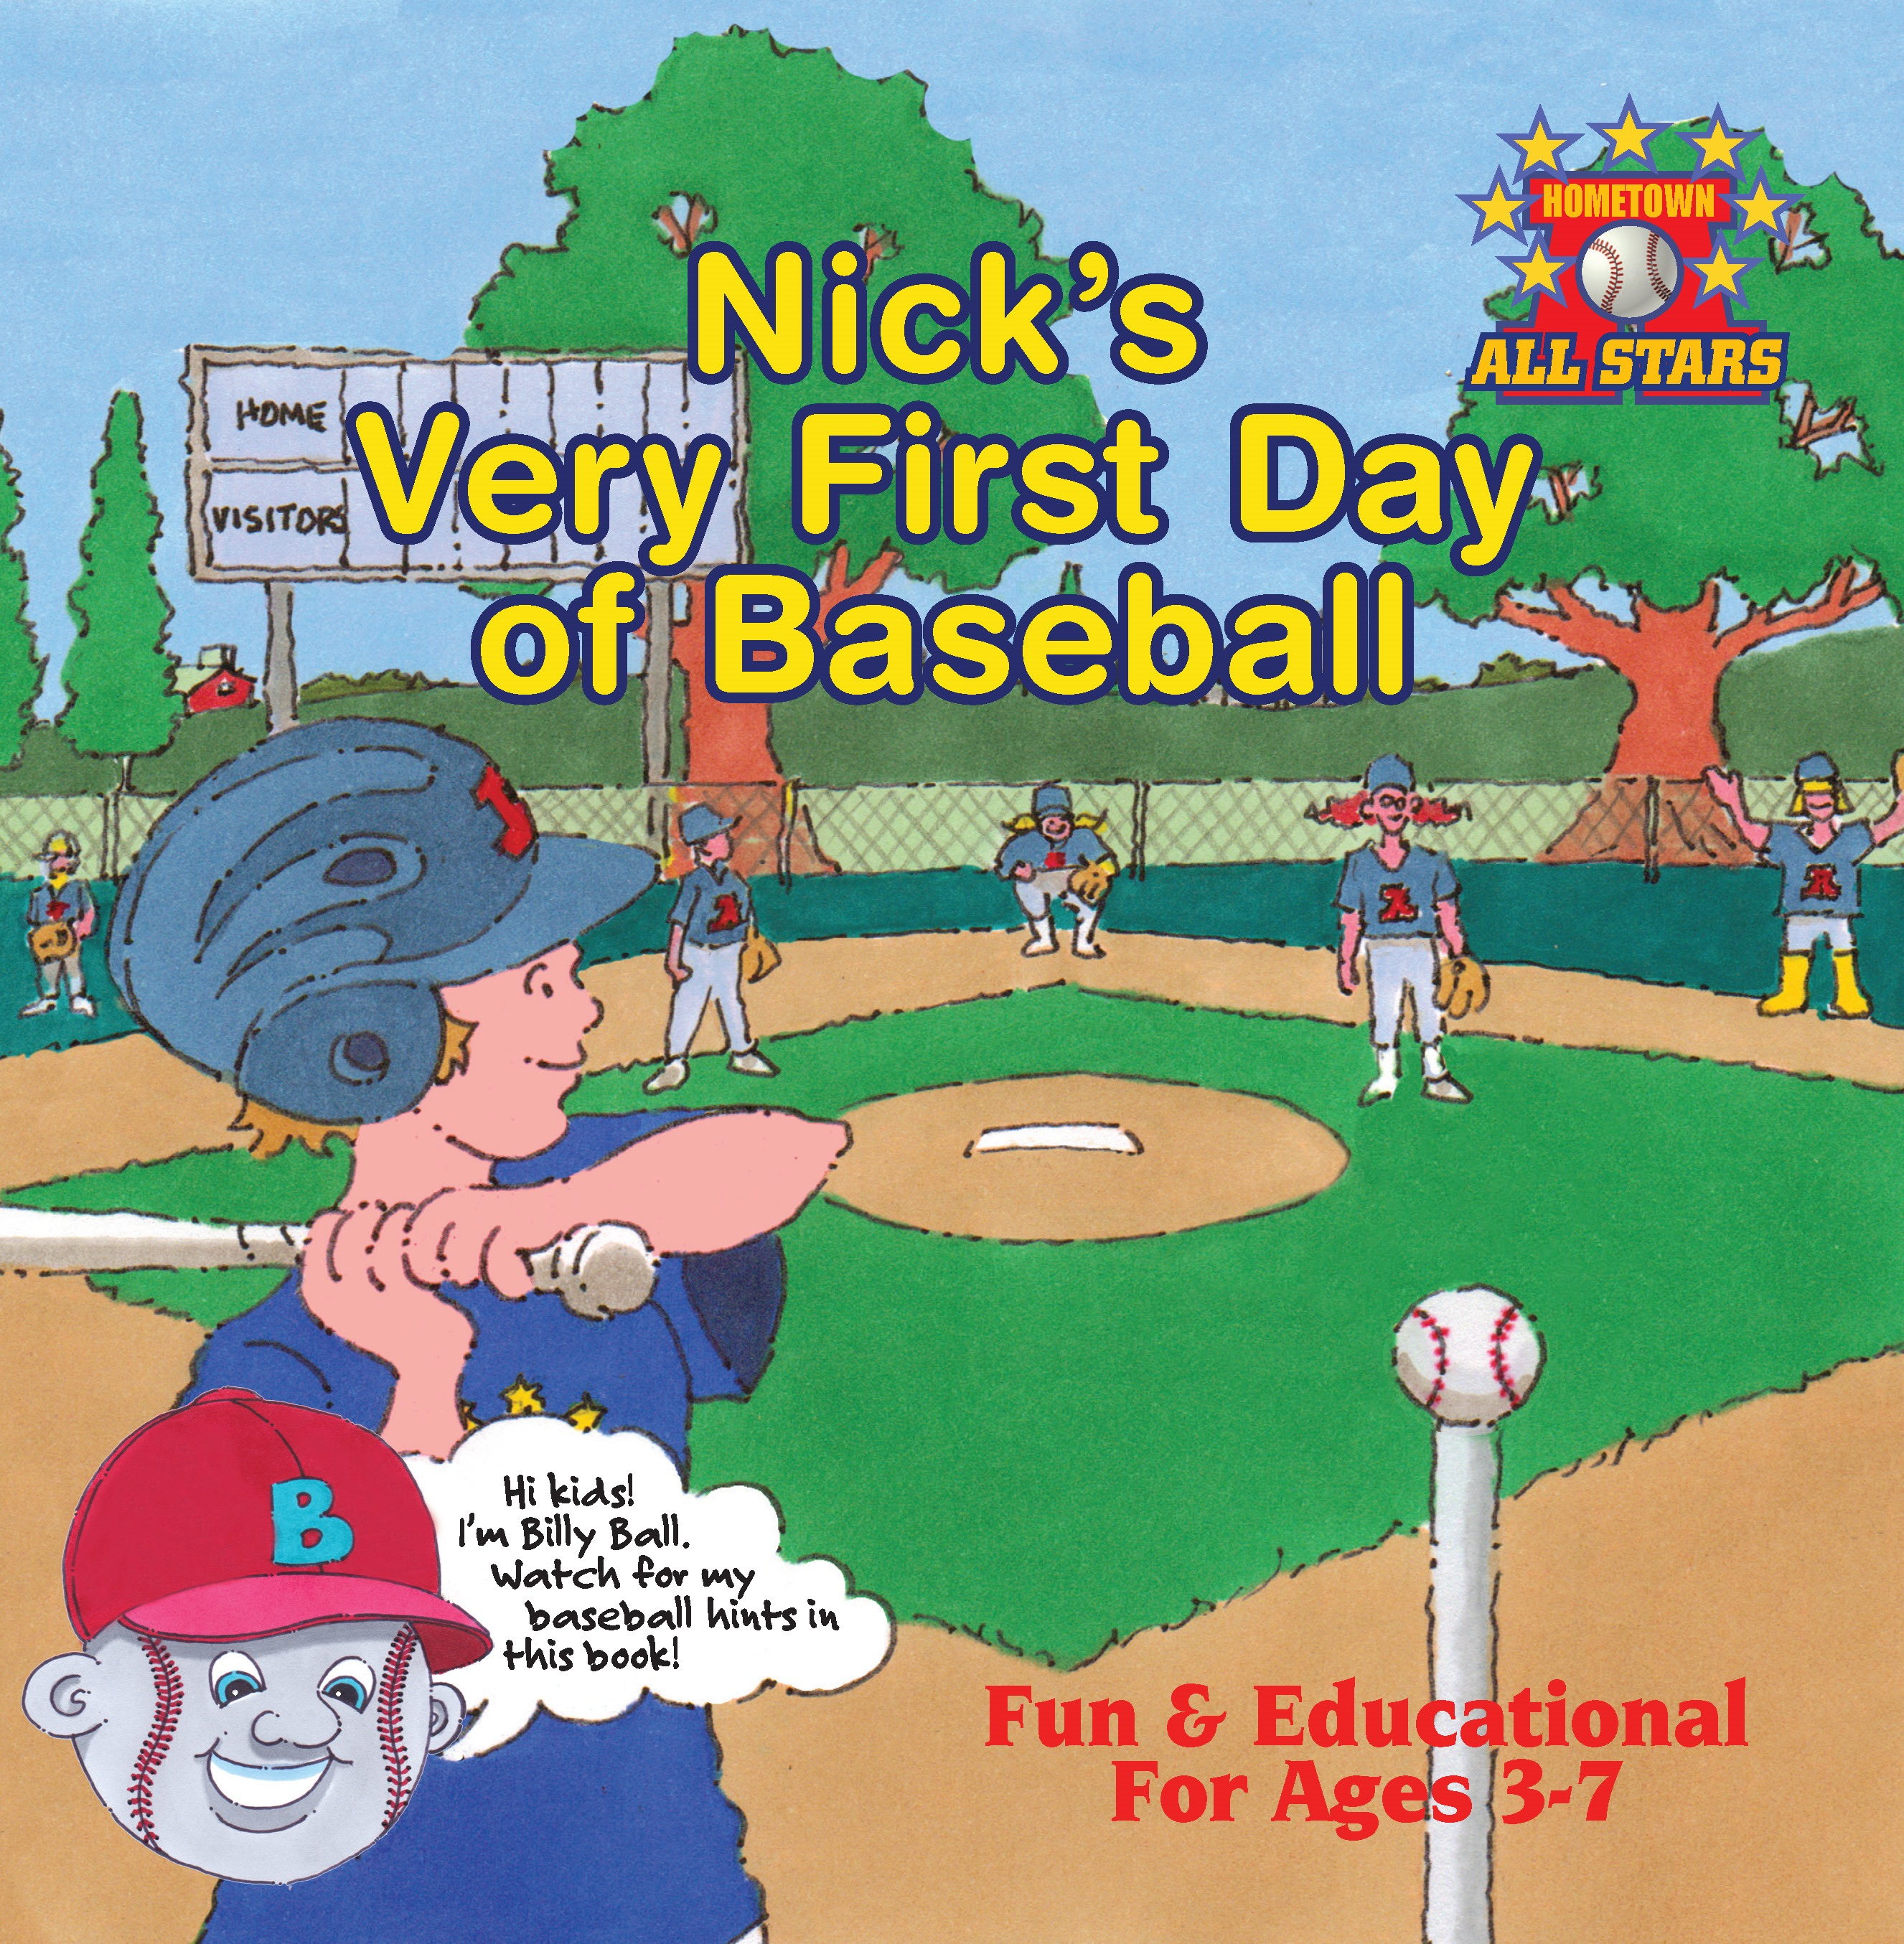 Nick's Very First Day of Baseball